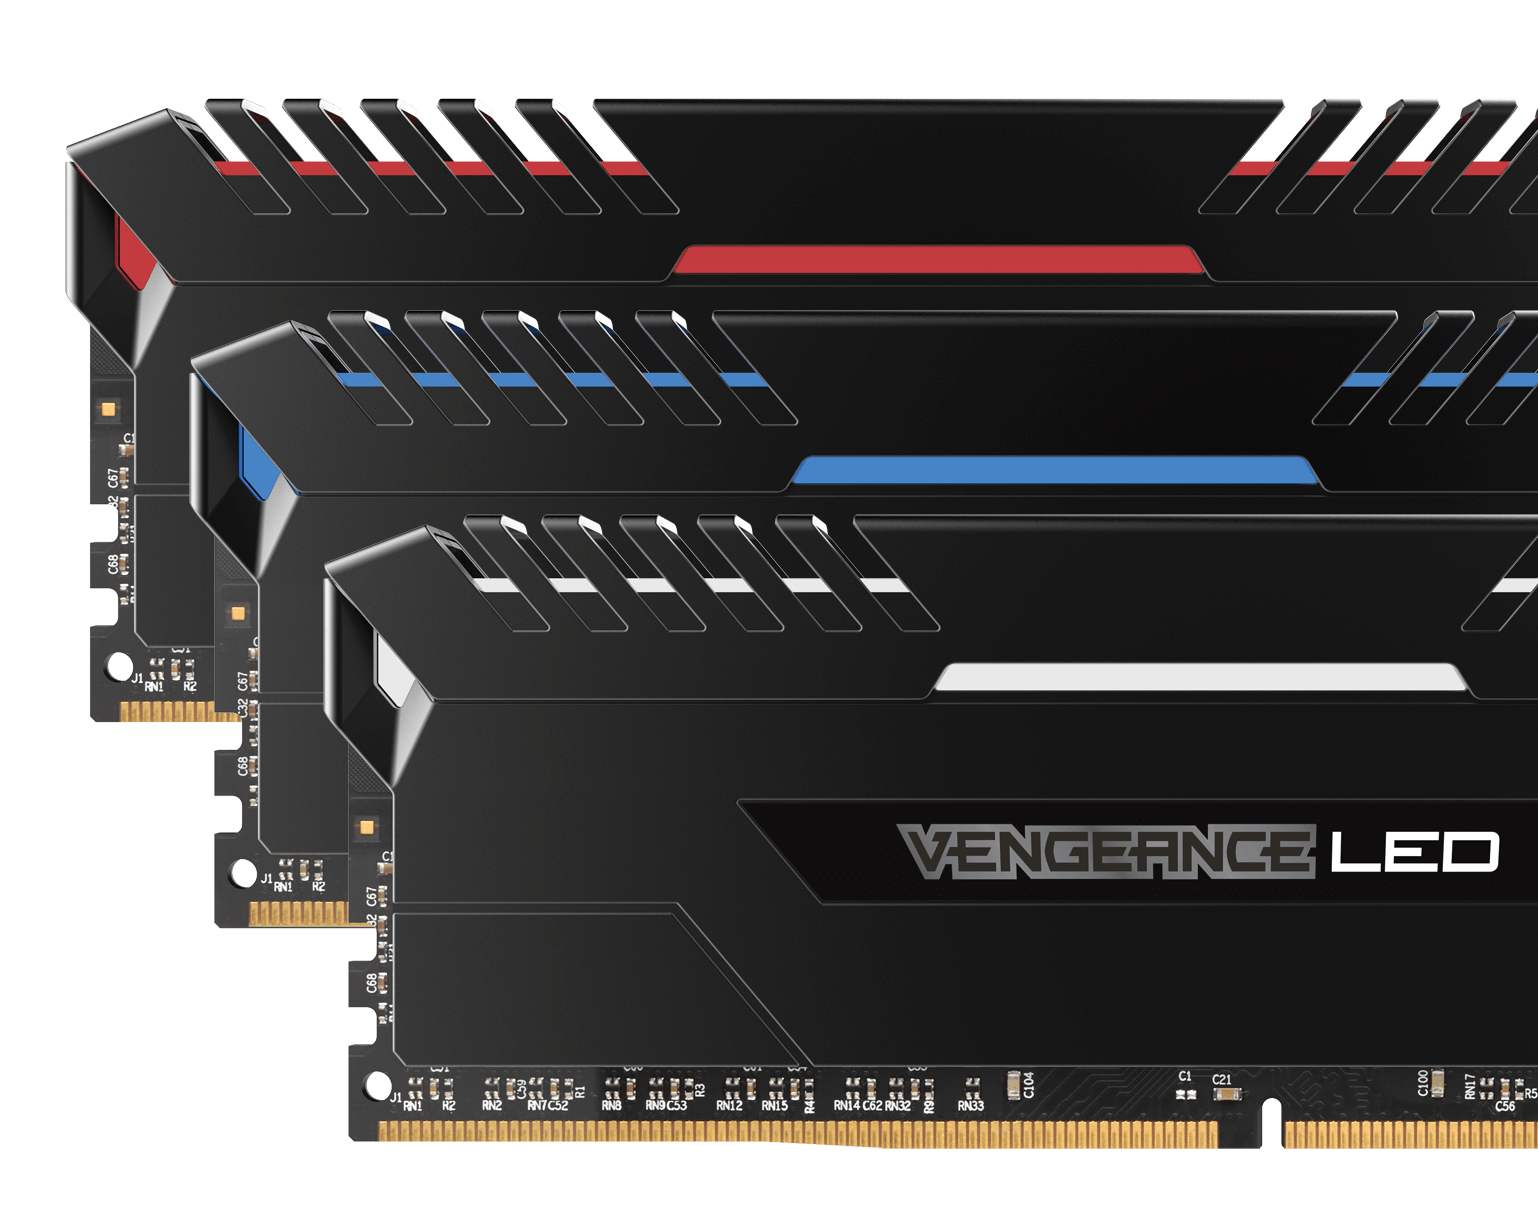 VENGEANCE® LED 16GB (2 x 8GB) DDR4 DRAM 3200MHz C16 Memory Kit - Red LED